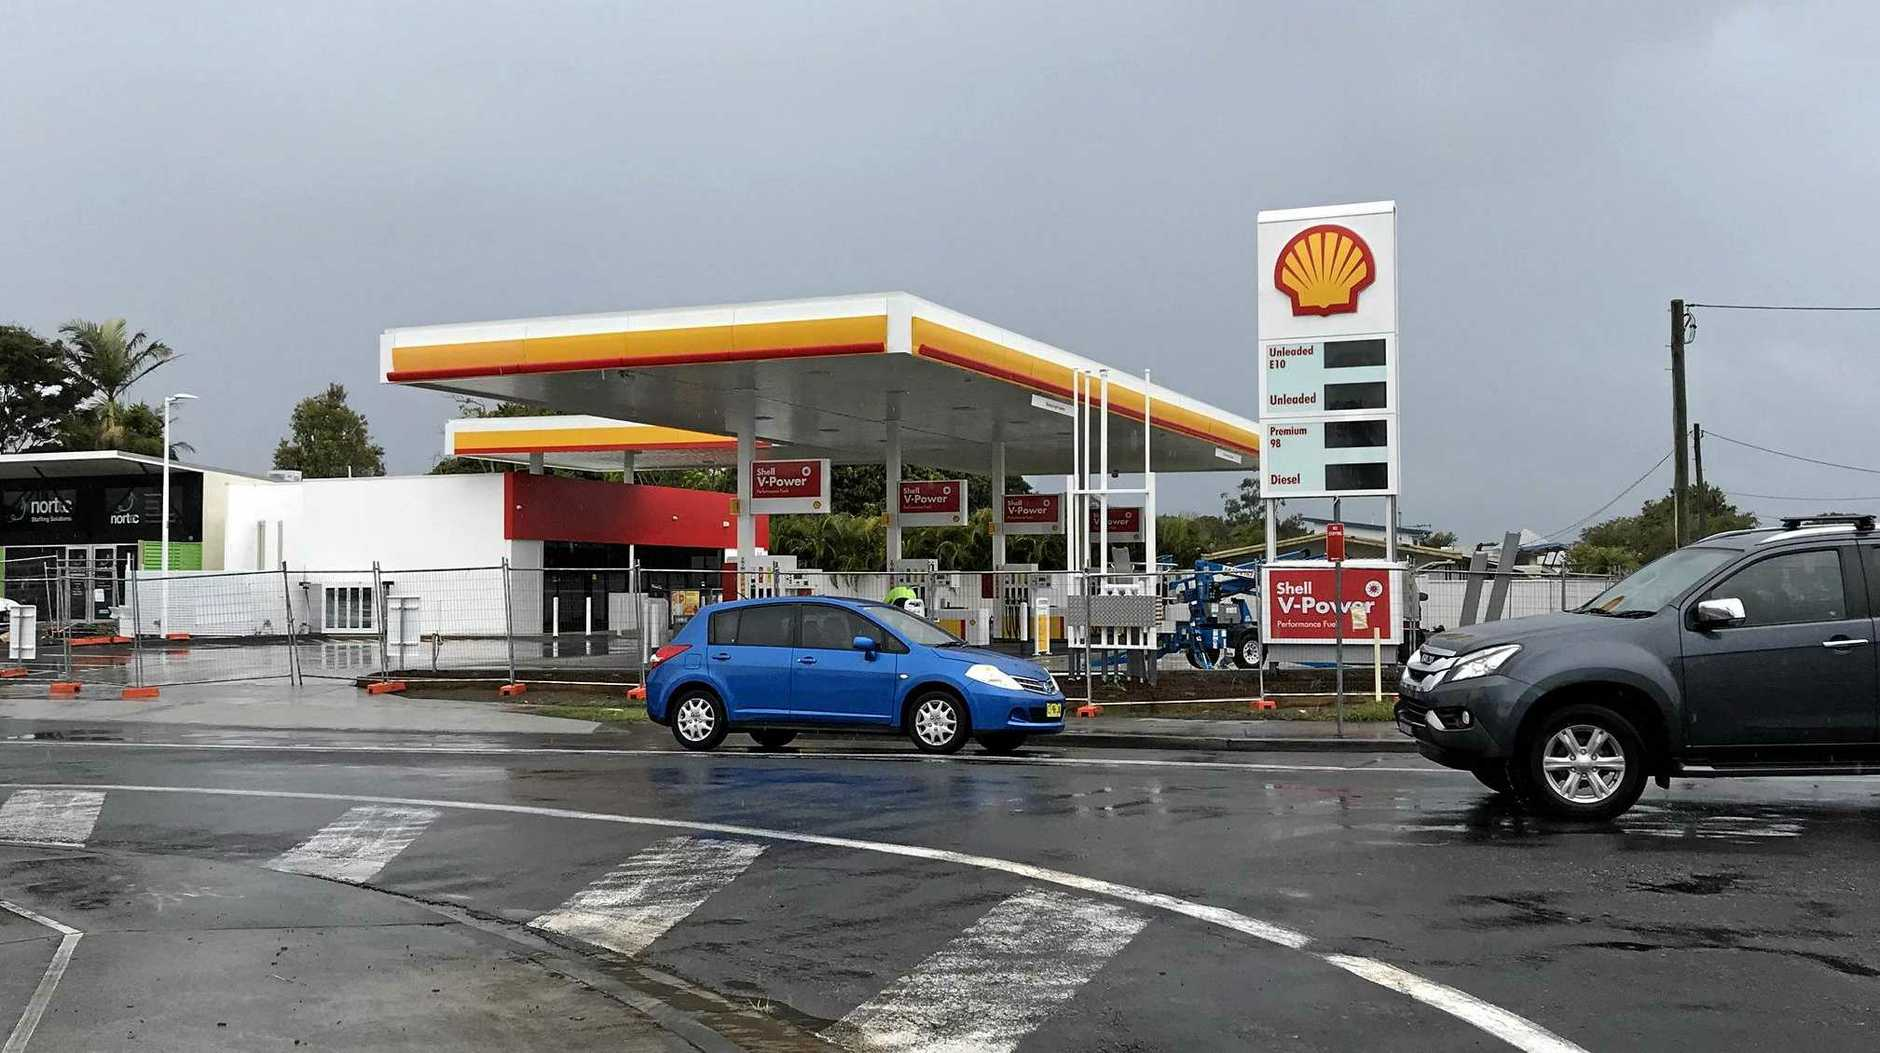 OPENING SOON: The new Shell service station on the corner of Yamba Rd and Treelands Dr, Yamba.